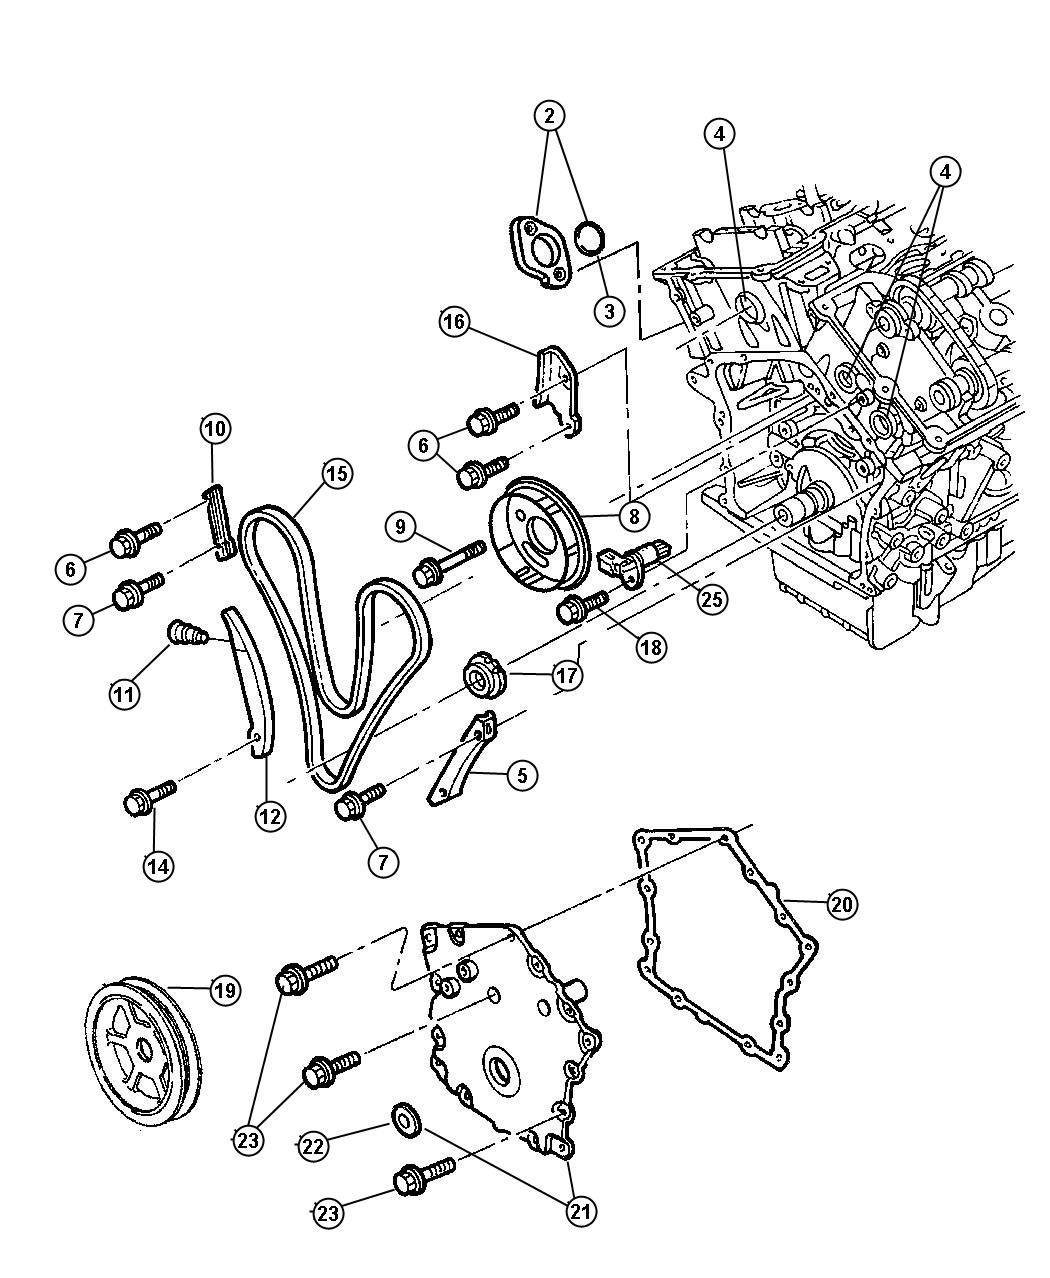 acura tsx parts diagram acura engine image for user manual